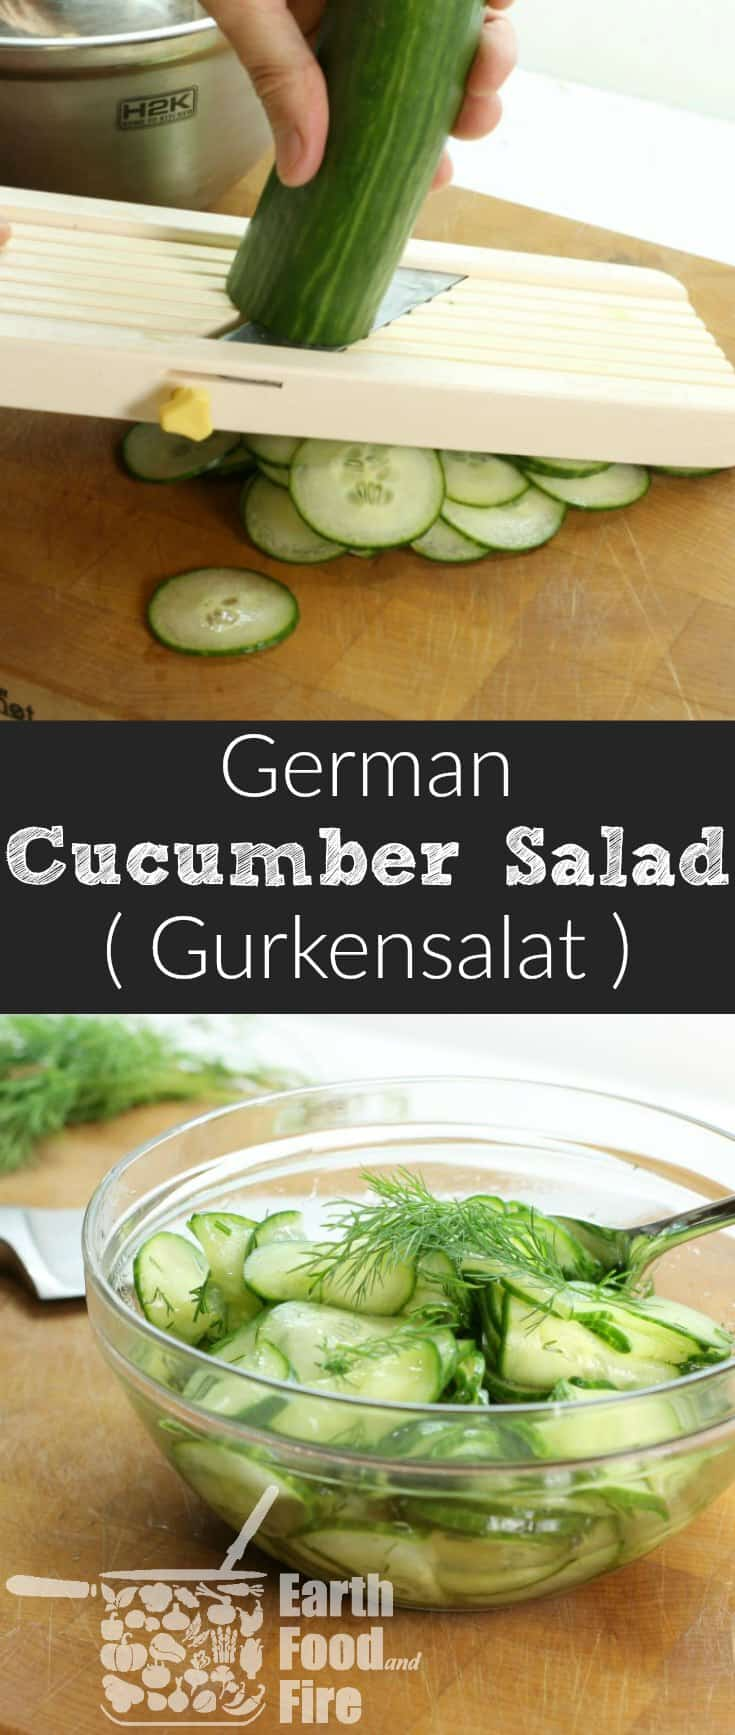 A quick and refreshing German Cucumber Salad recipe, featuring only 4 ingredients! Perfect with a light lunch or served alongside roasted meats! Gluten Free, Vegetarian, and Whole 30 friendly! #gurkensalat #cucumber #salad #glutenfree